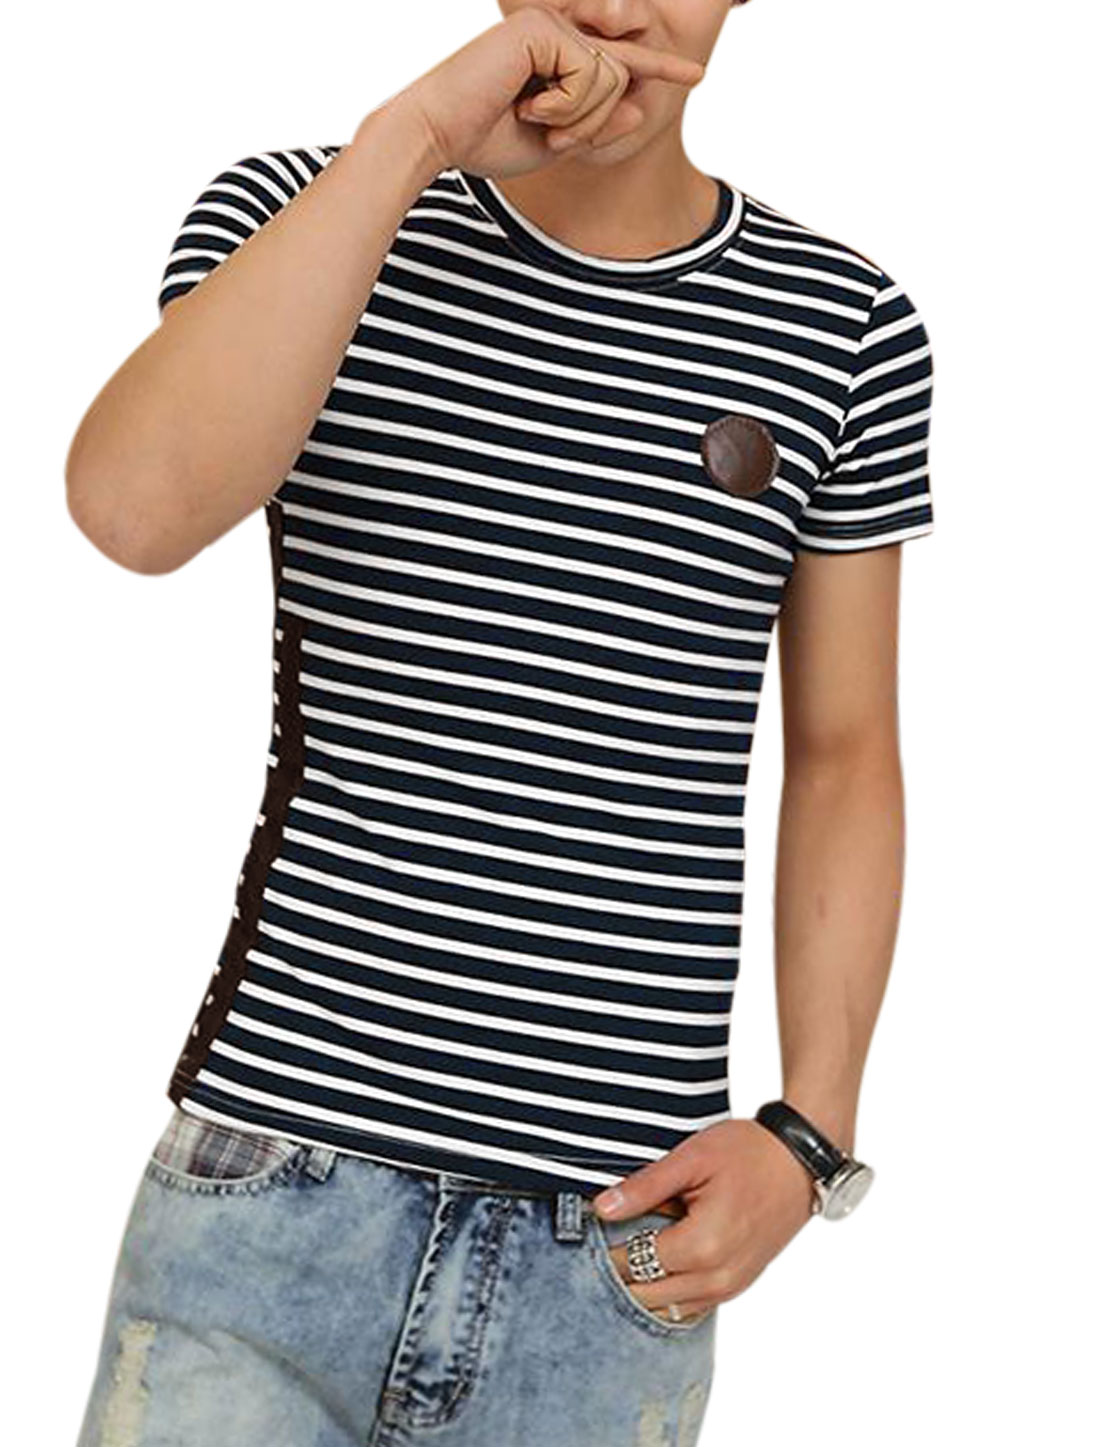 Men Stripes Pattern Imitation Leather Decor Cozy Fit T-Shirt Navy Blue White S